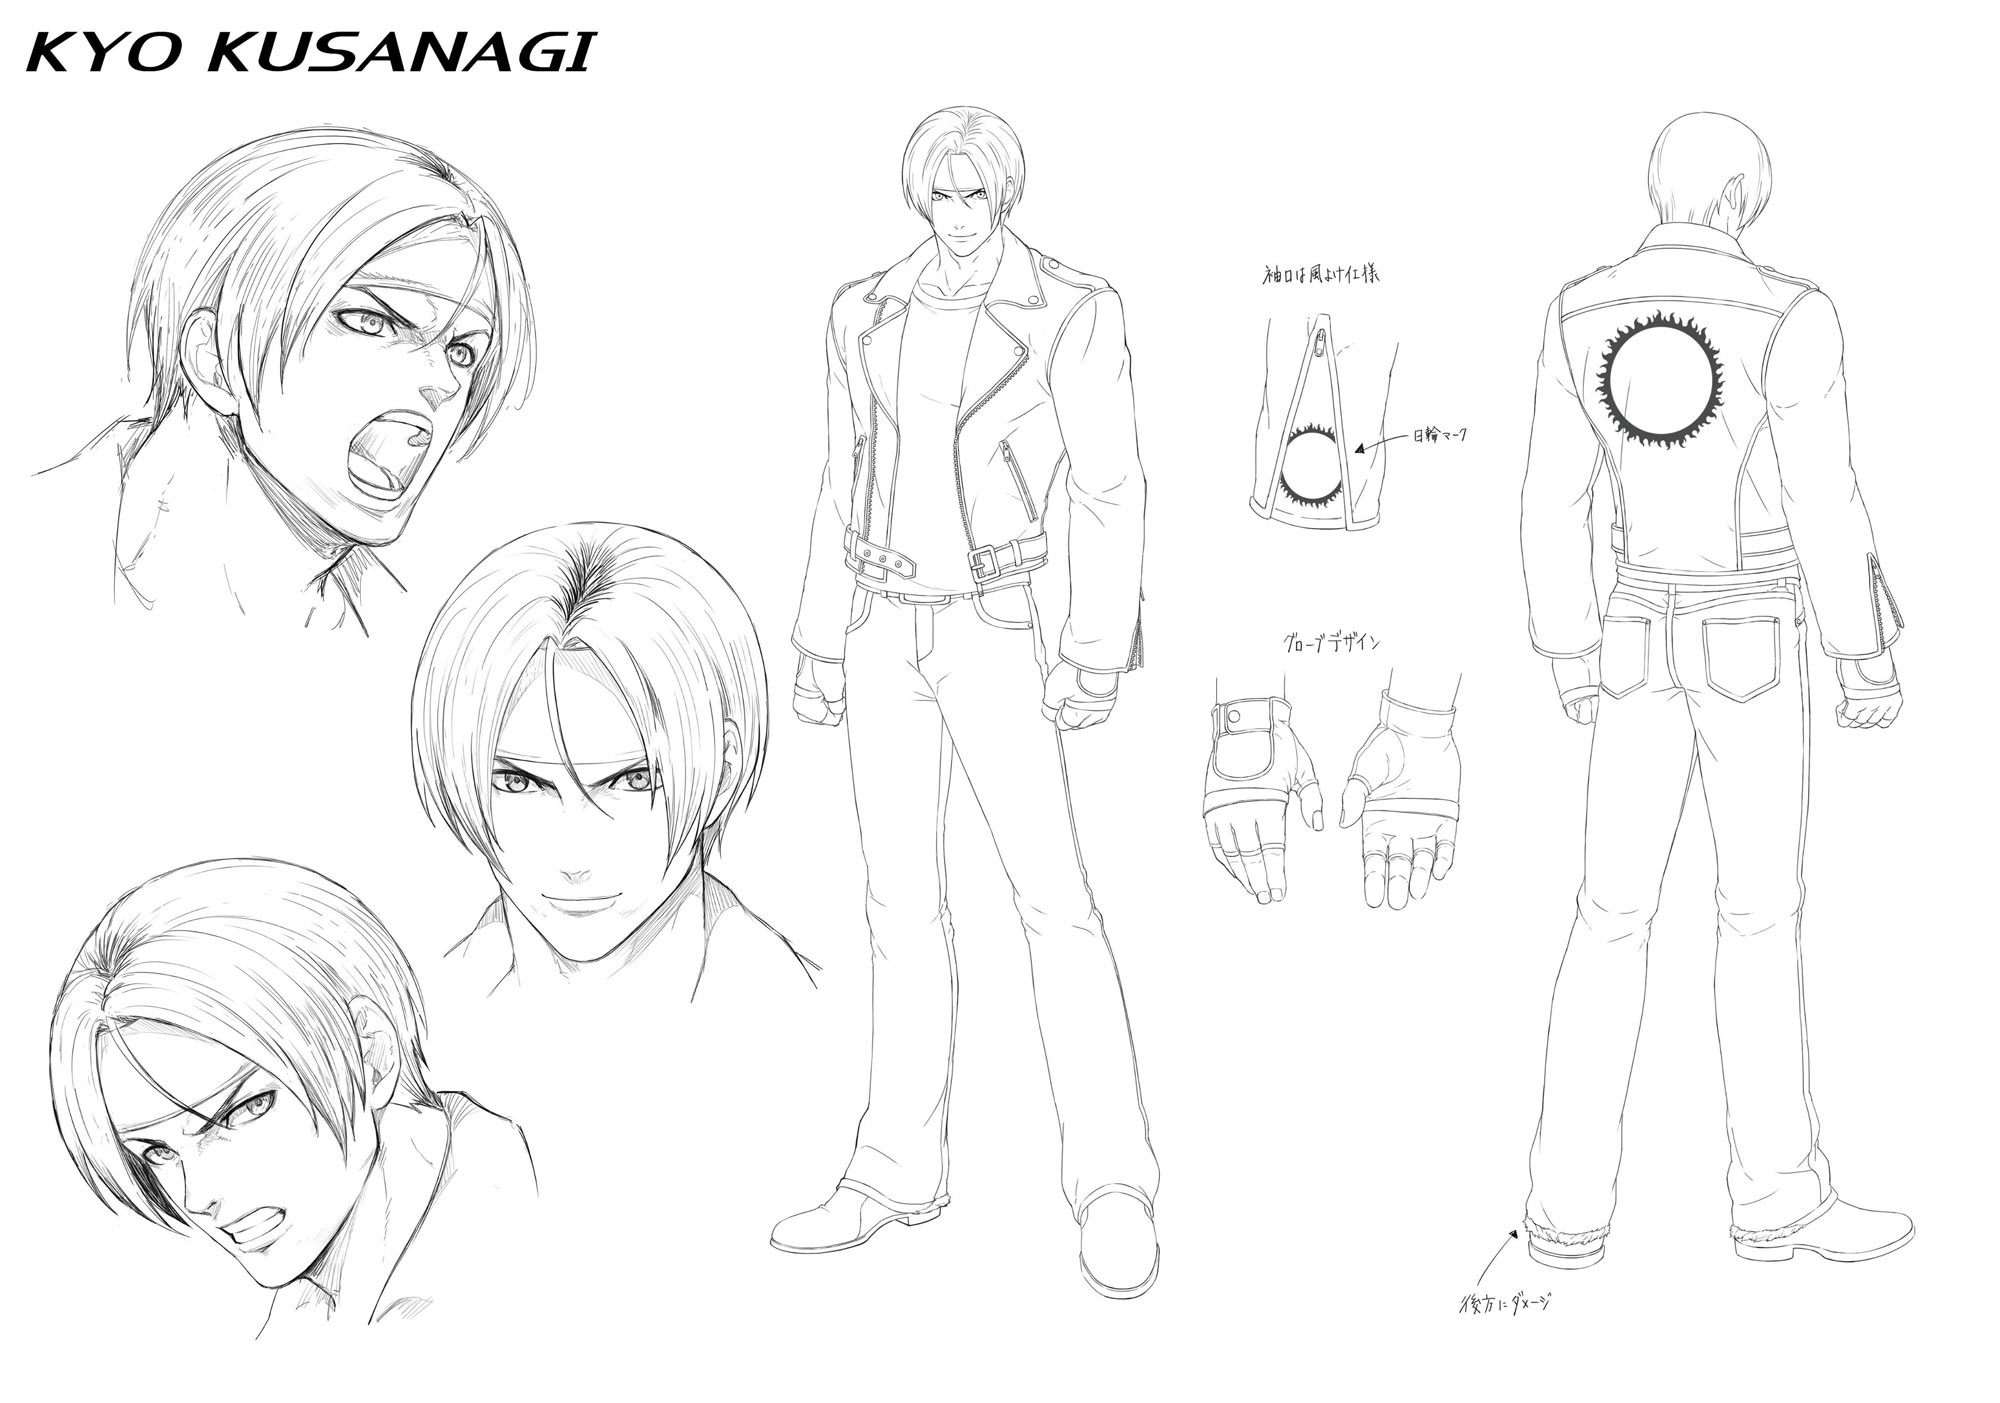 King of Fighters 15 characters and logo 1 out of 5 image gallery